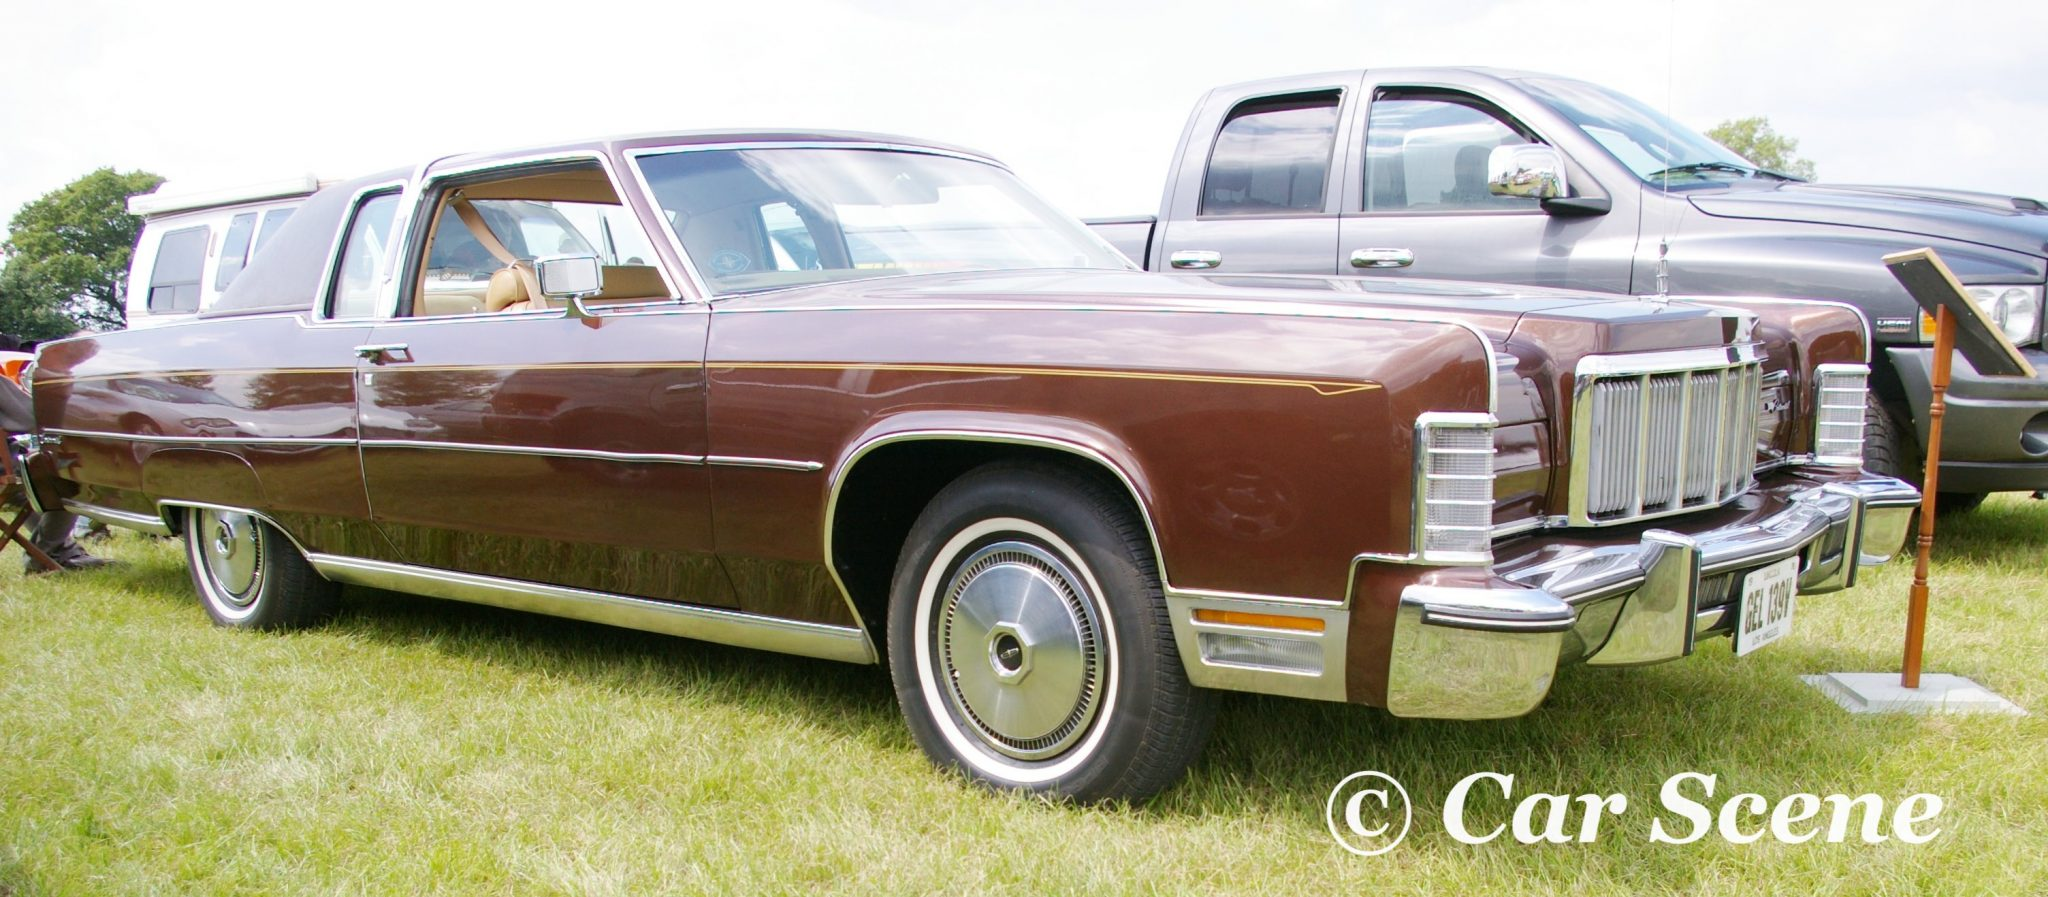 1976 Lincoln Continental front three quarters view